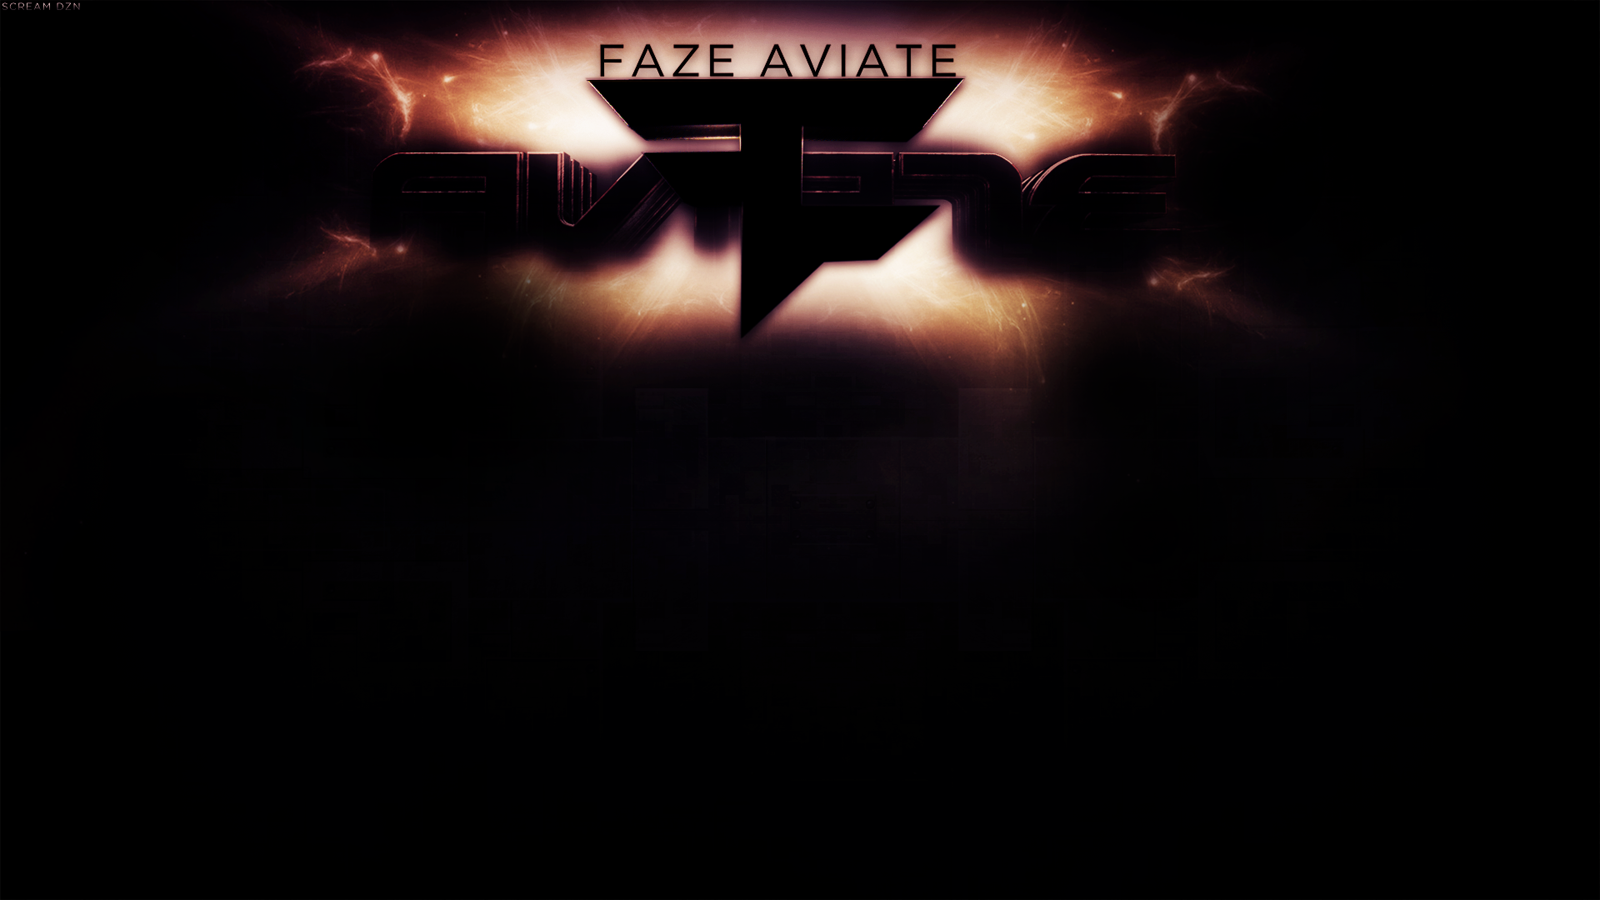 Best 51 FaZe Adapt Wallpaper on HipWallpaper FaZe Adapt 1600x900